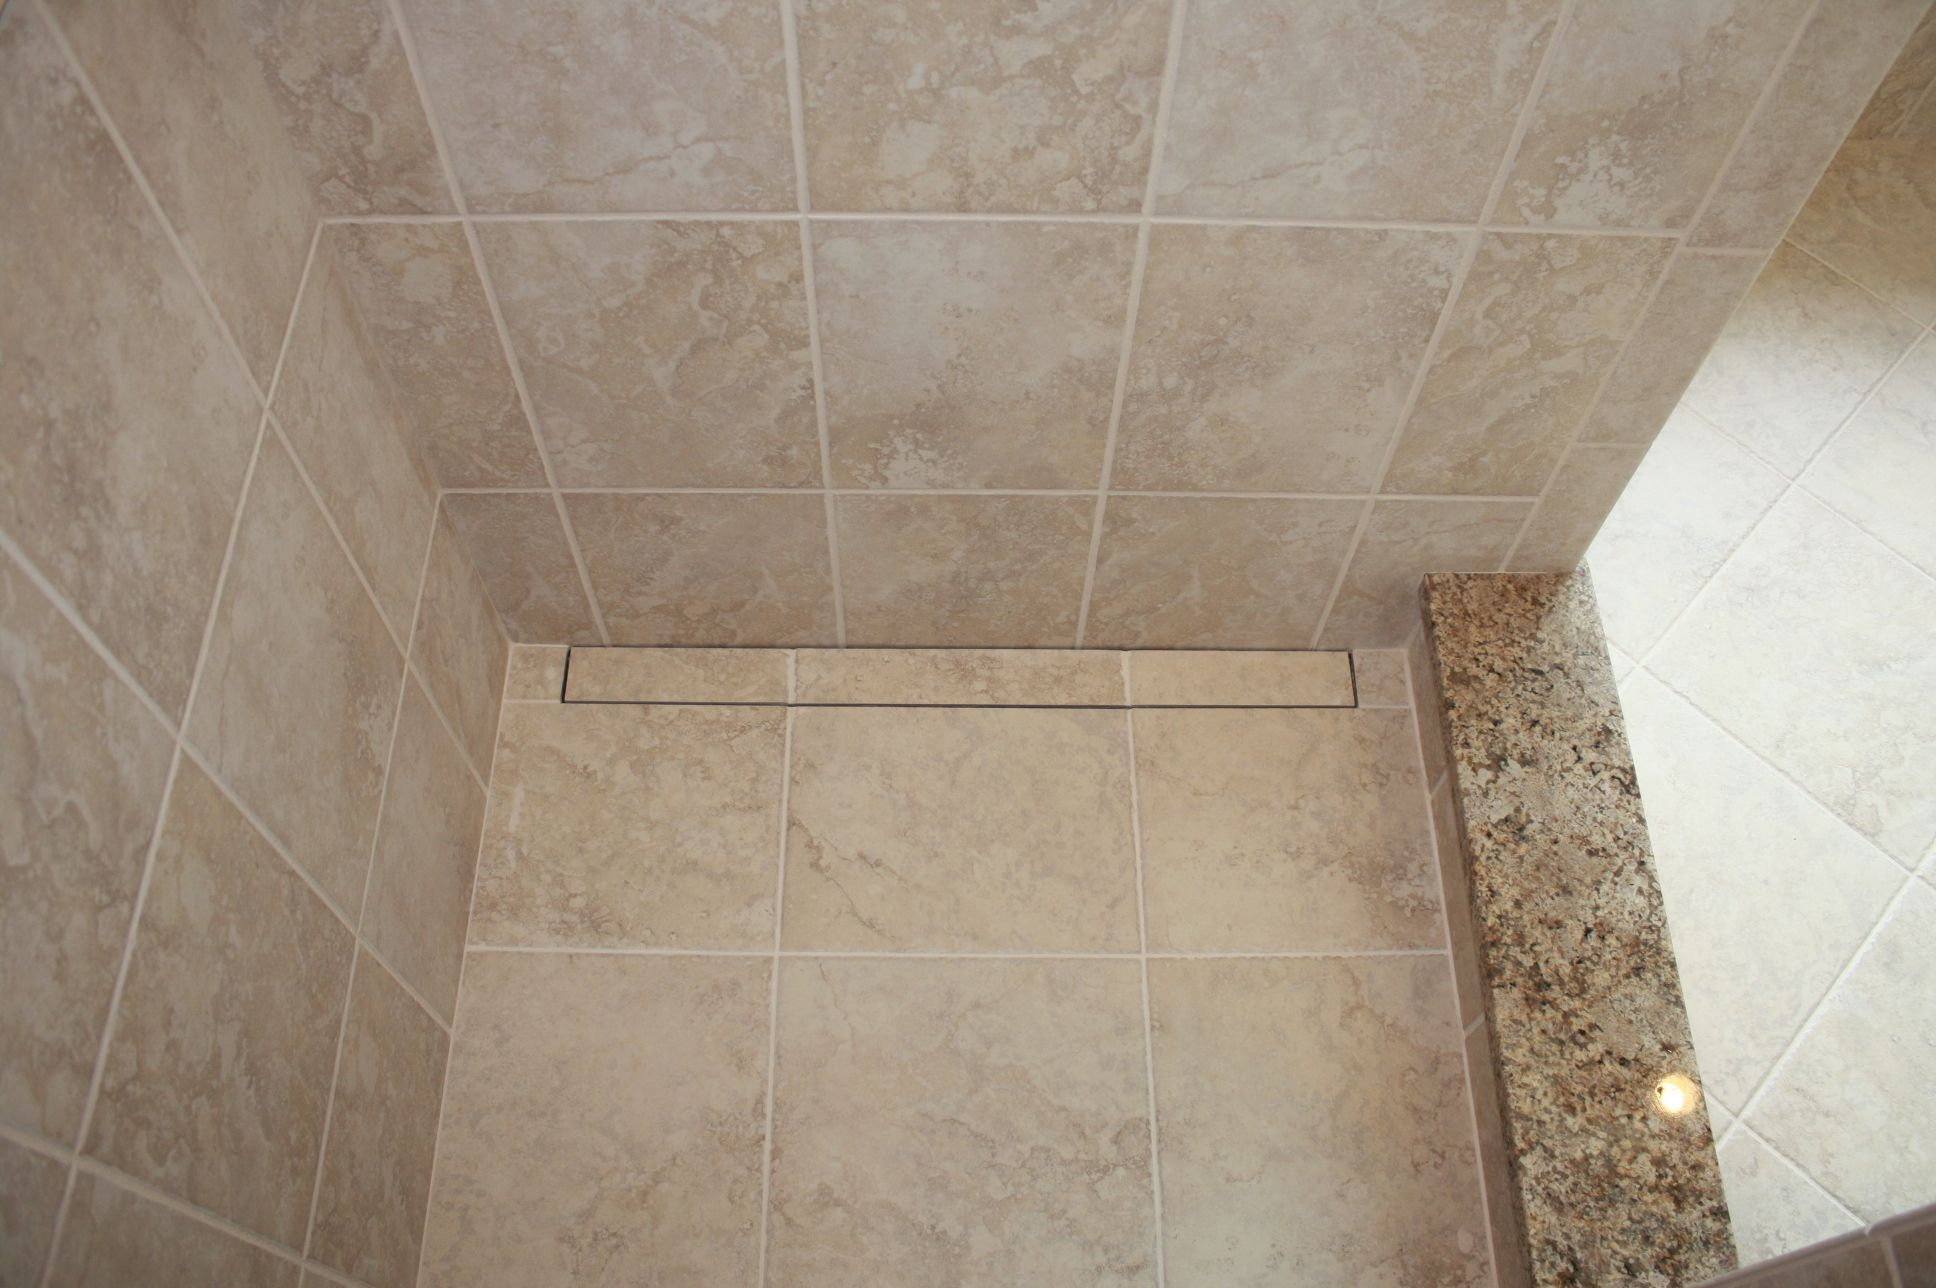 Schluter shower floor using the tiled linear drain any size tile schluter shower floor using the tiled linear drain any size tile can be used on dailygadgetfo Image collections